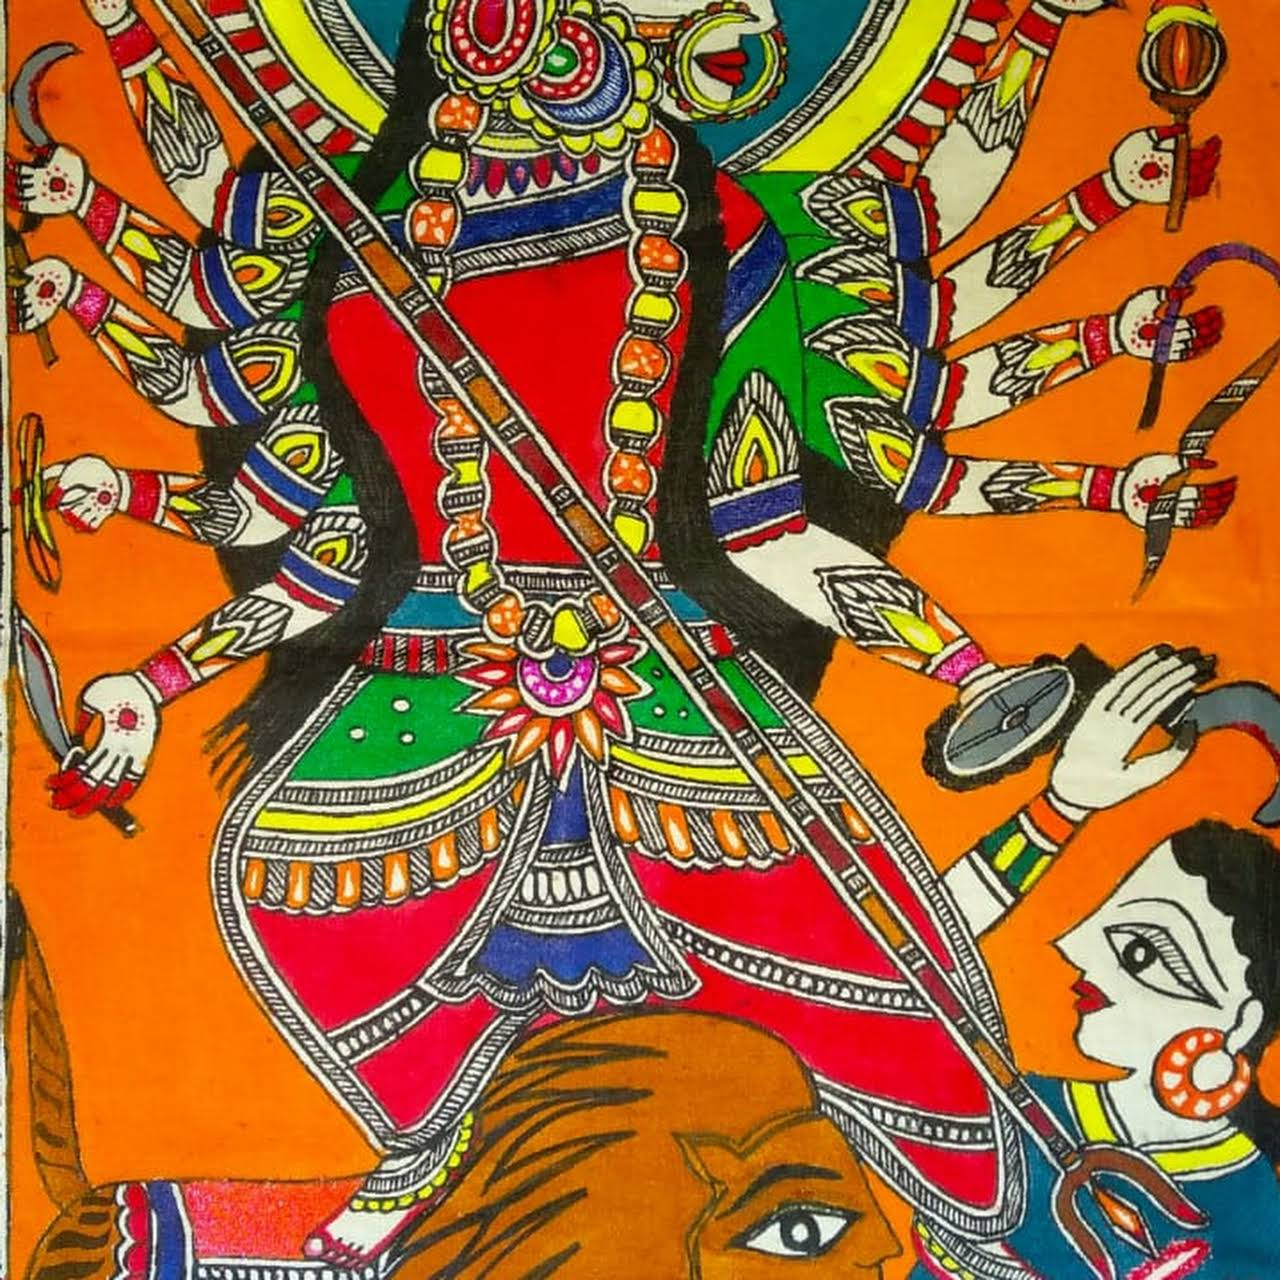 Mithila Art Gallery Mithila Madhubani Painting Madhubani Art Mithila Artpaintings Handmade Art And Craft Wall Painting Art And Artist Madhubani Painting Hand Made Painting Wall Painting